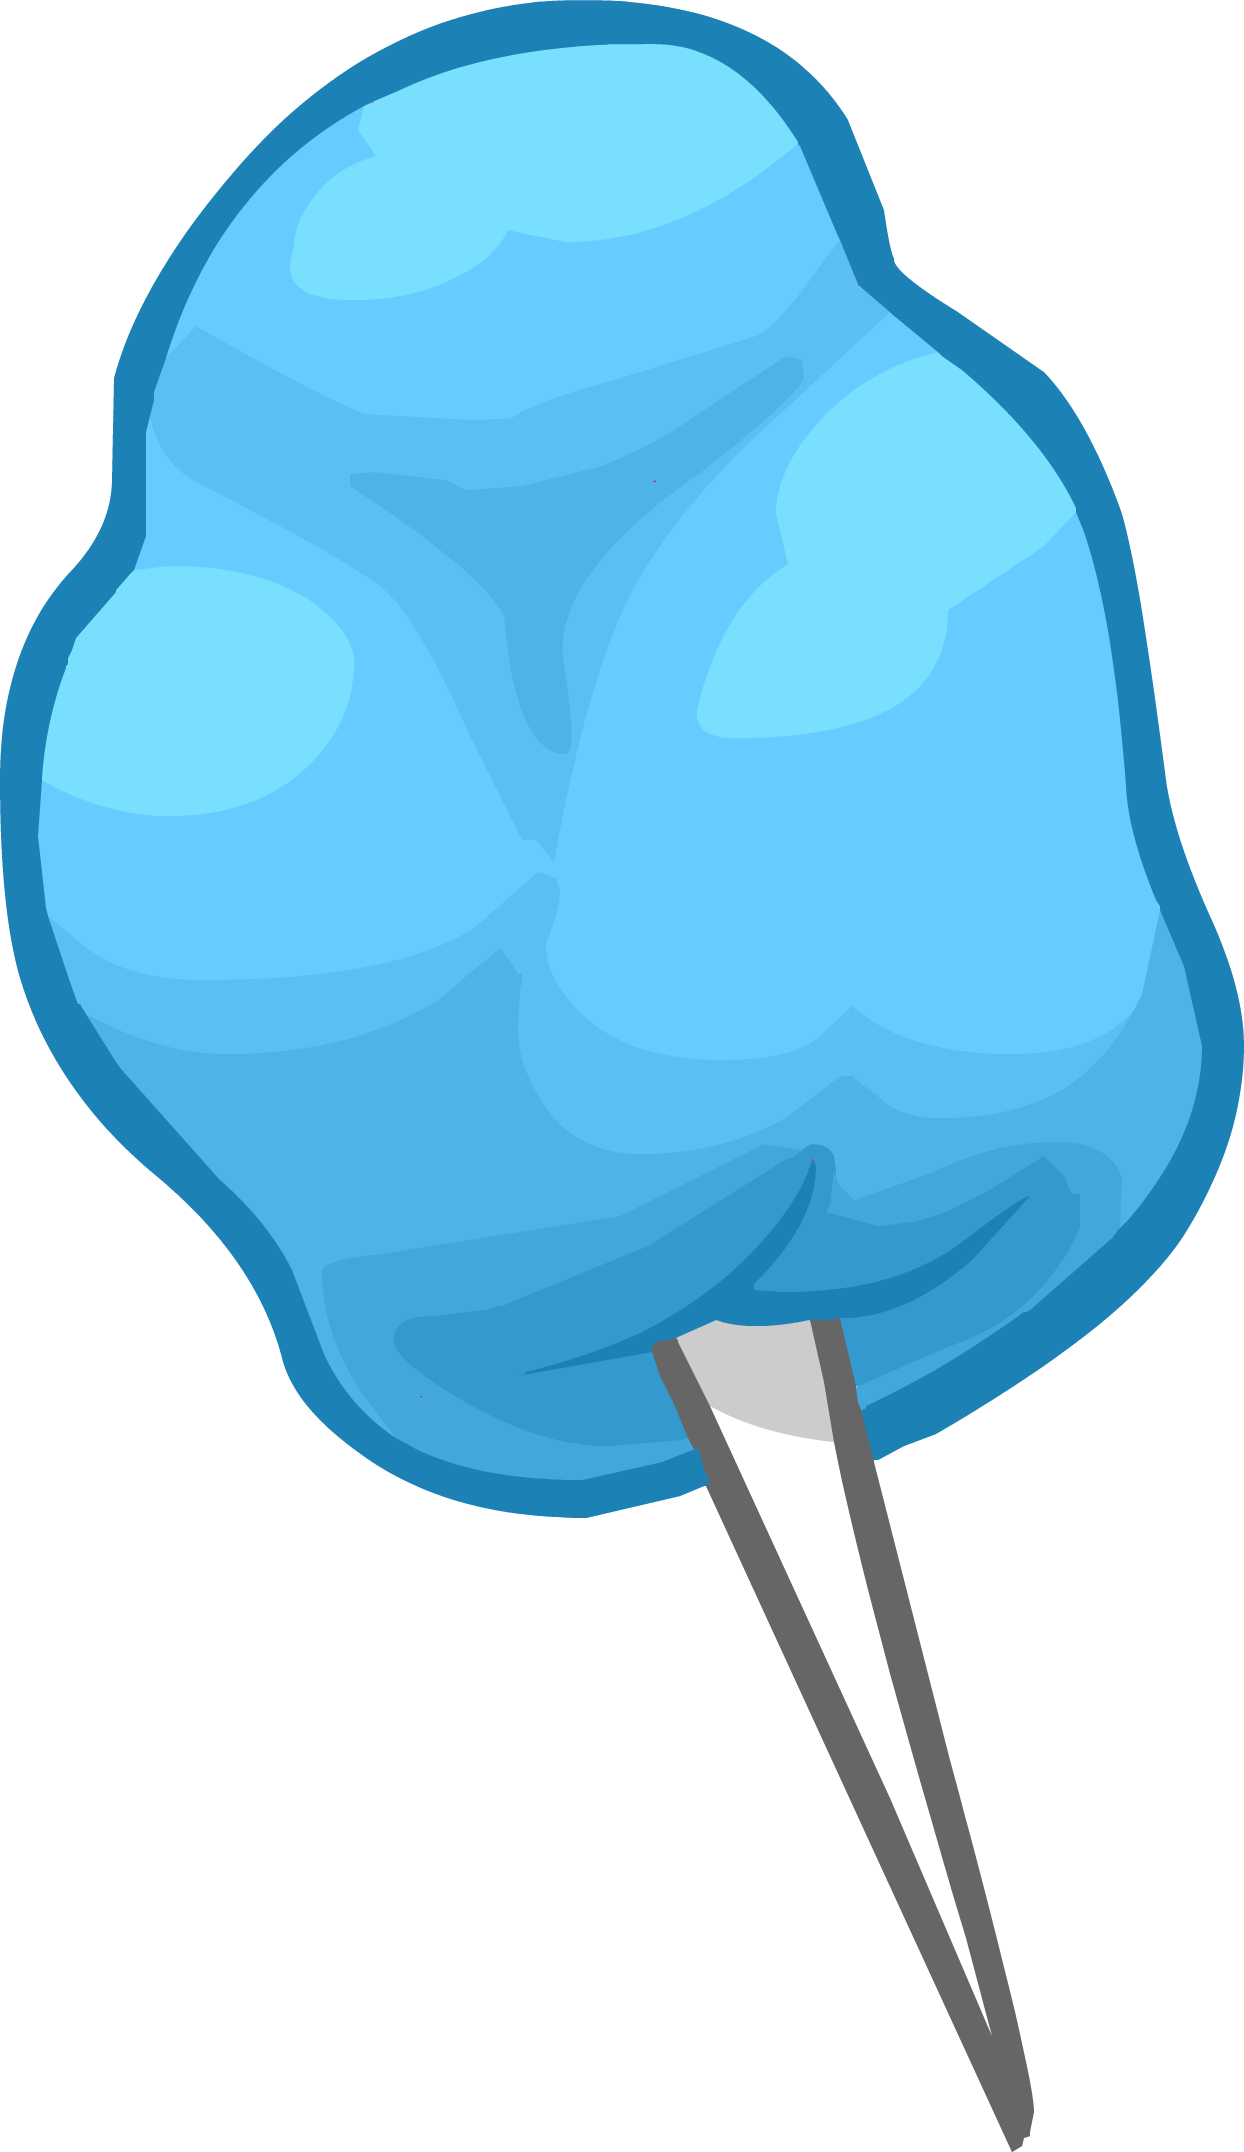 Blue Cotton Candy Clipart transparent PNG.